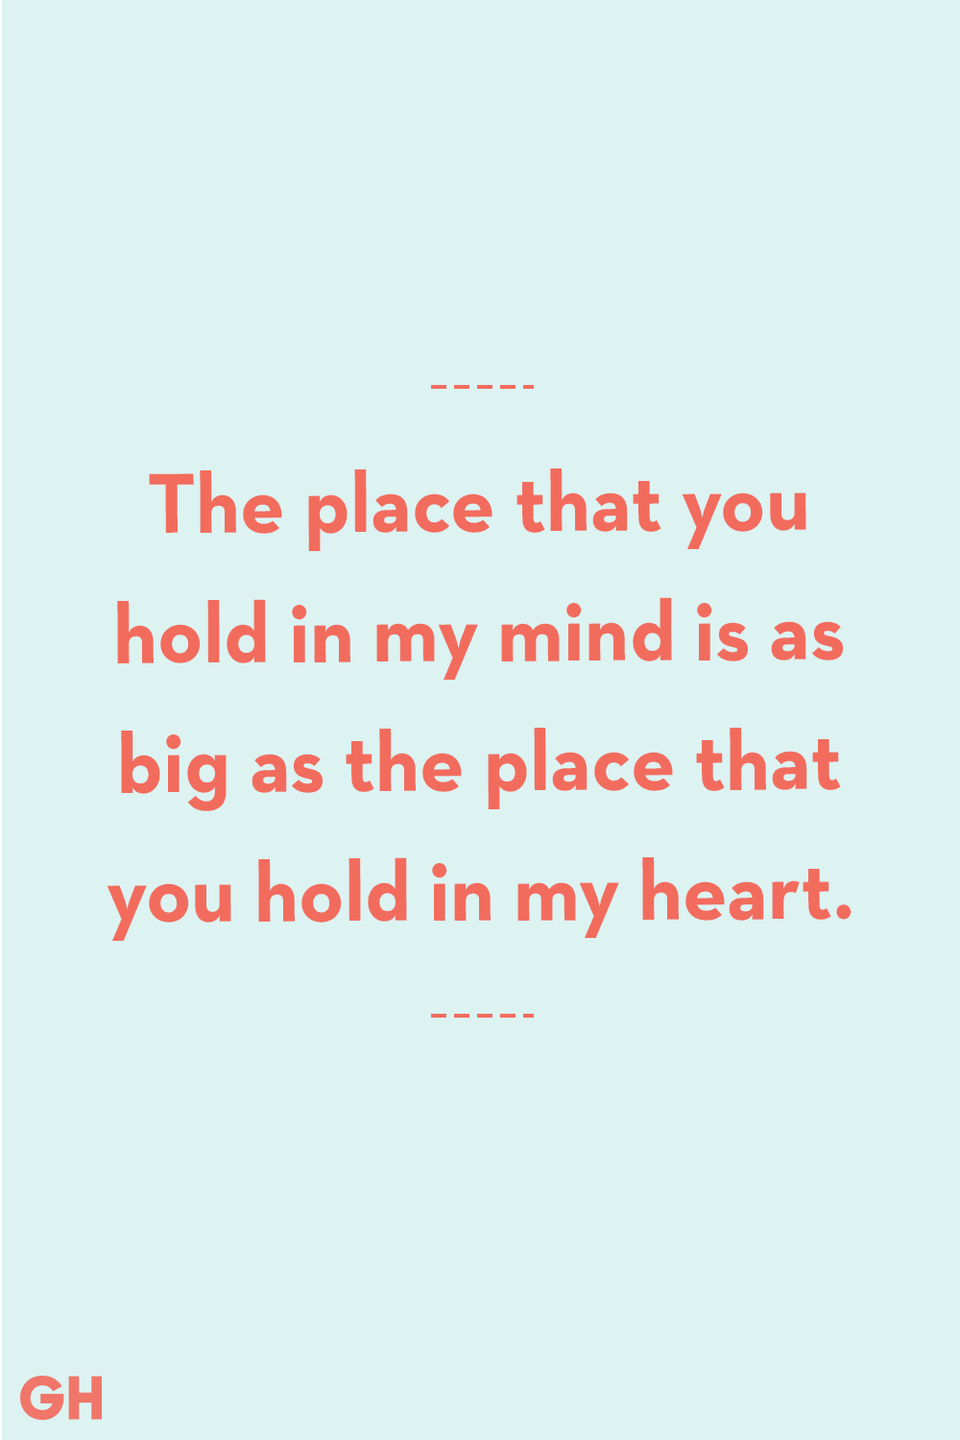 <p>The place that you hold in my mind is as big as the place that you hold in my heart.</p>